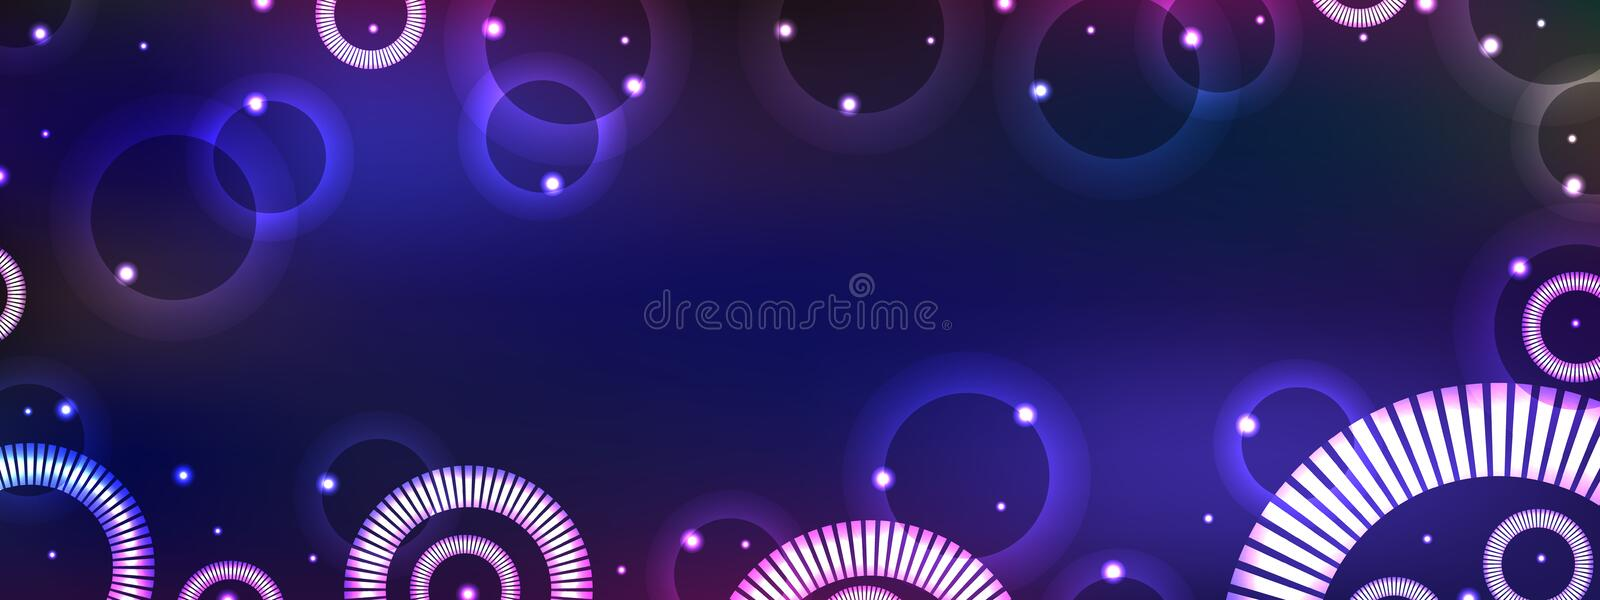 Circle fantasy horizontal banner royalty free illustration